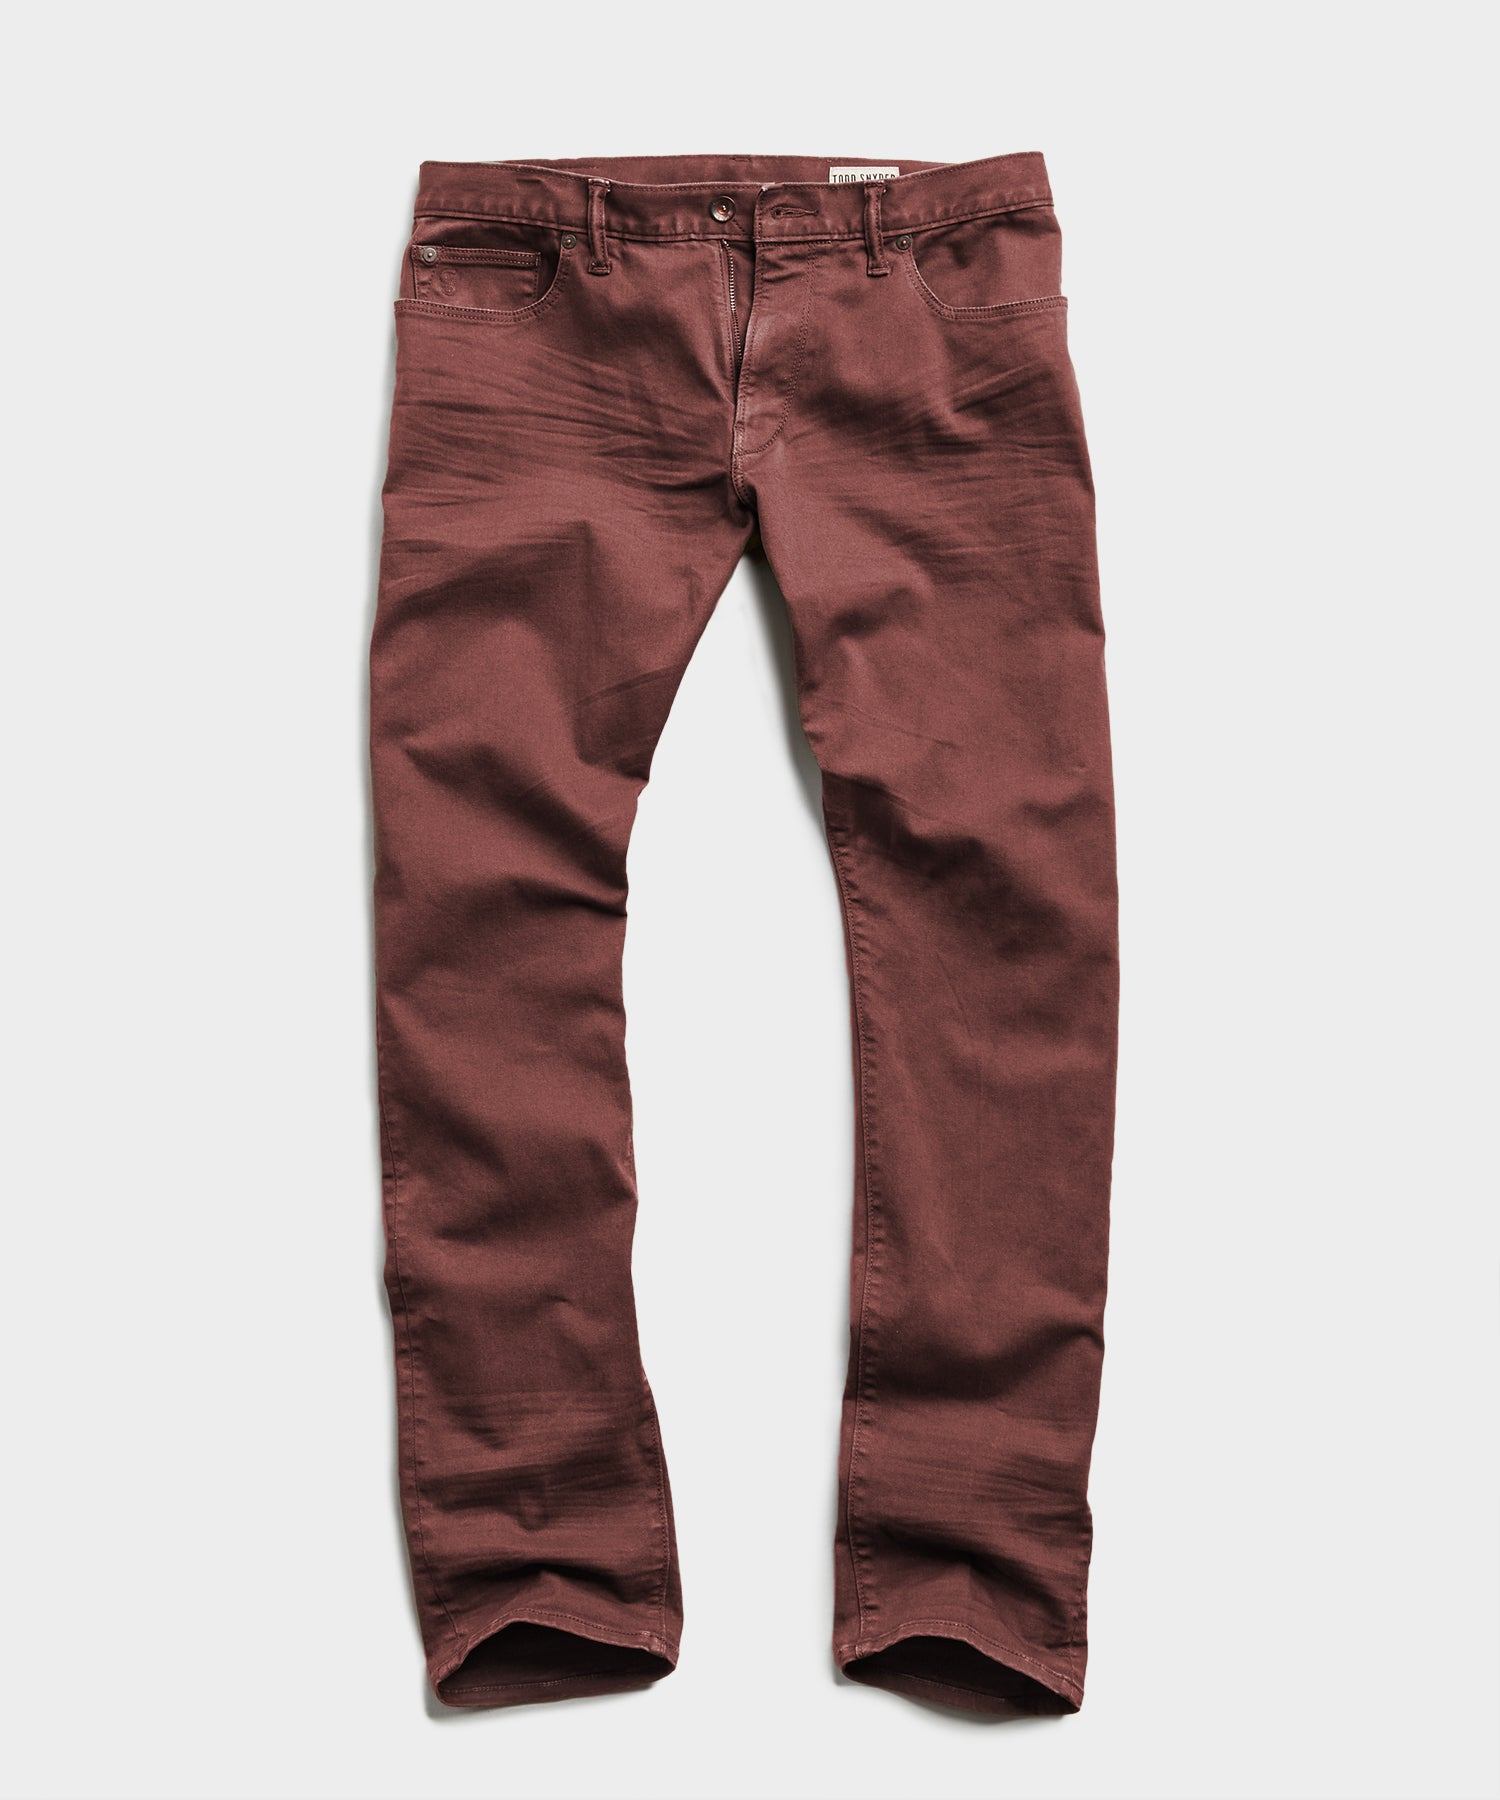 SLIM FIT 5-POCKET CHINO IN REDWOOD